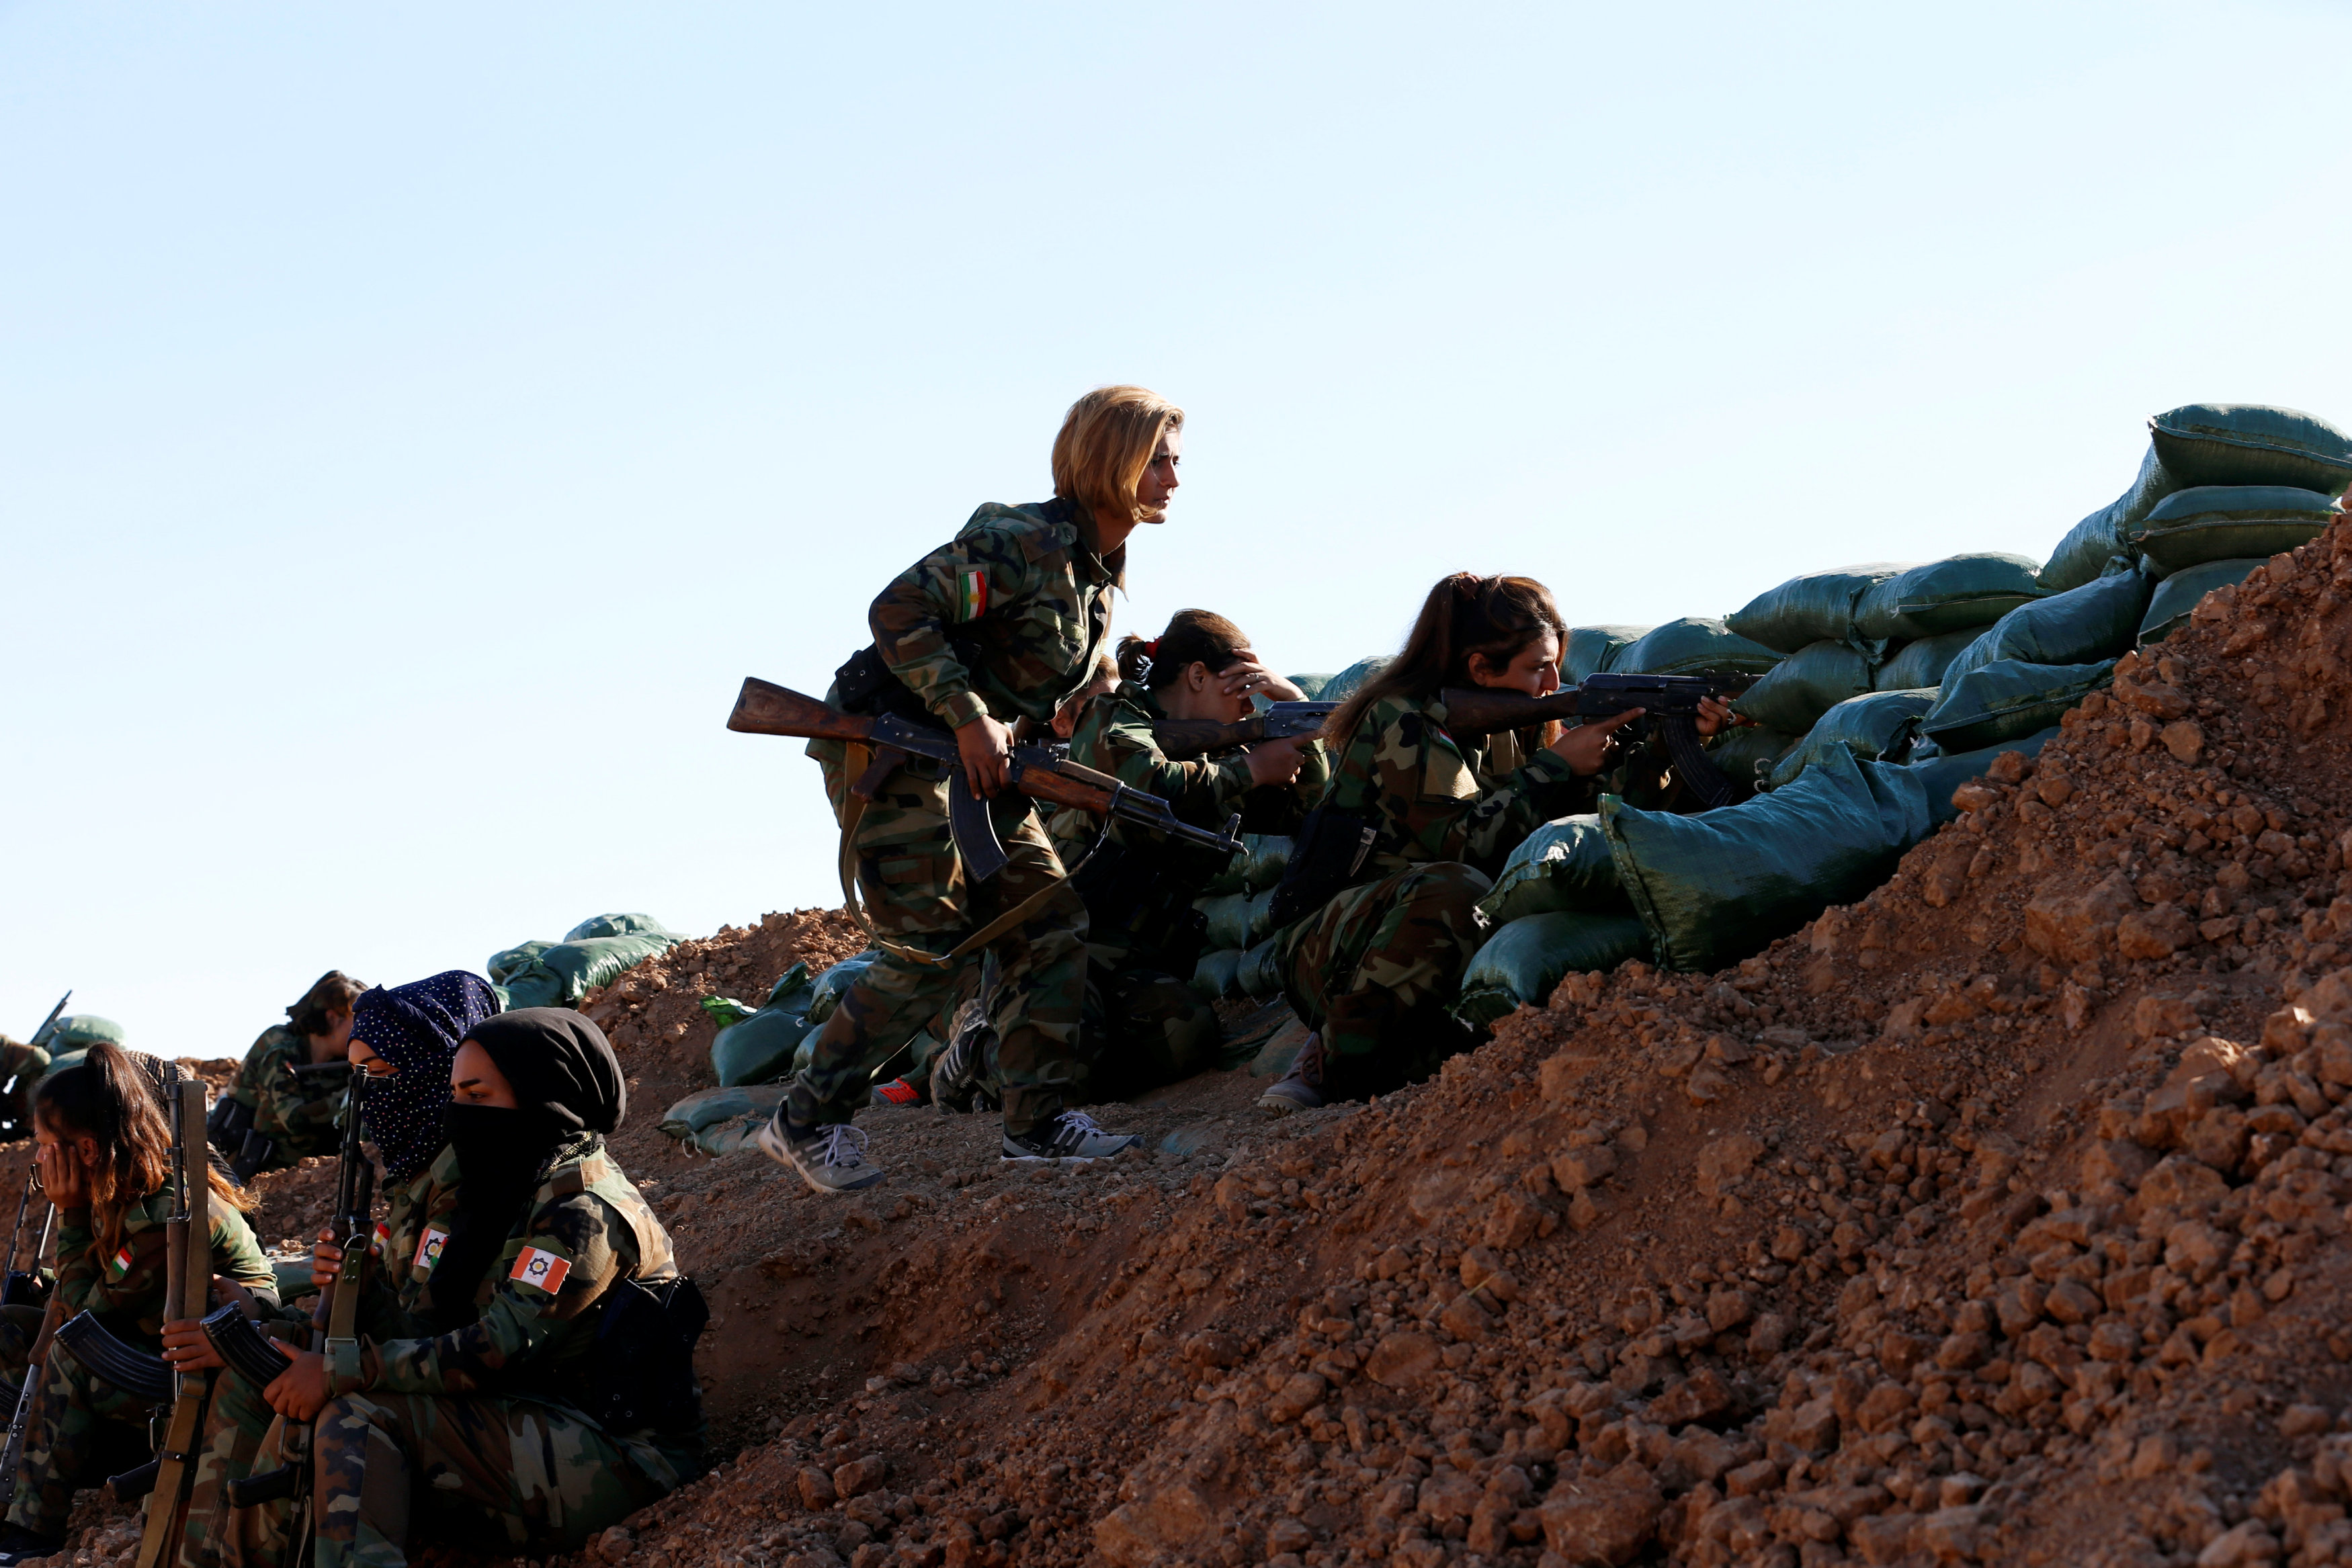 Iranian-Kurdish female fighters take position during a battle with Islamic State militants in Bashiqa, near Mosul, Iraq